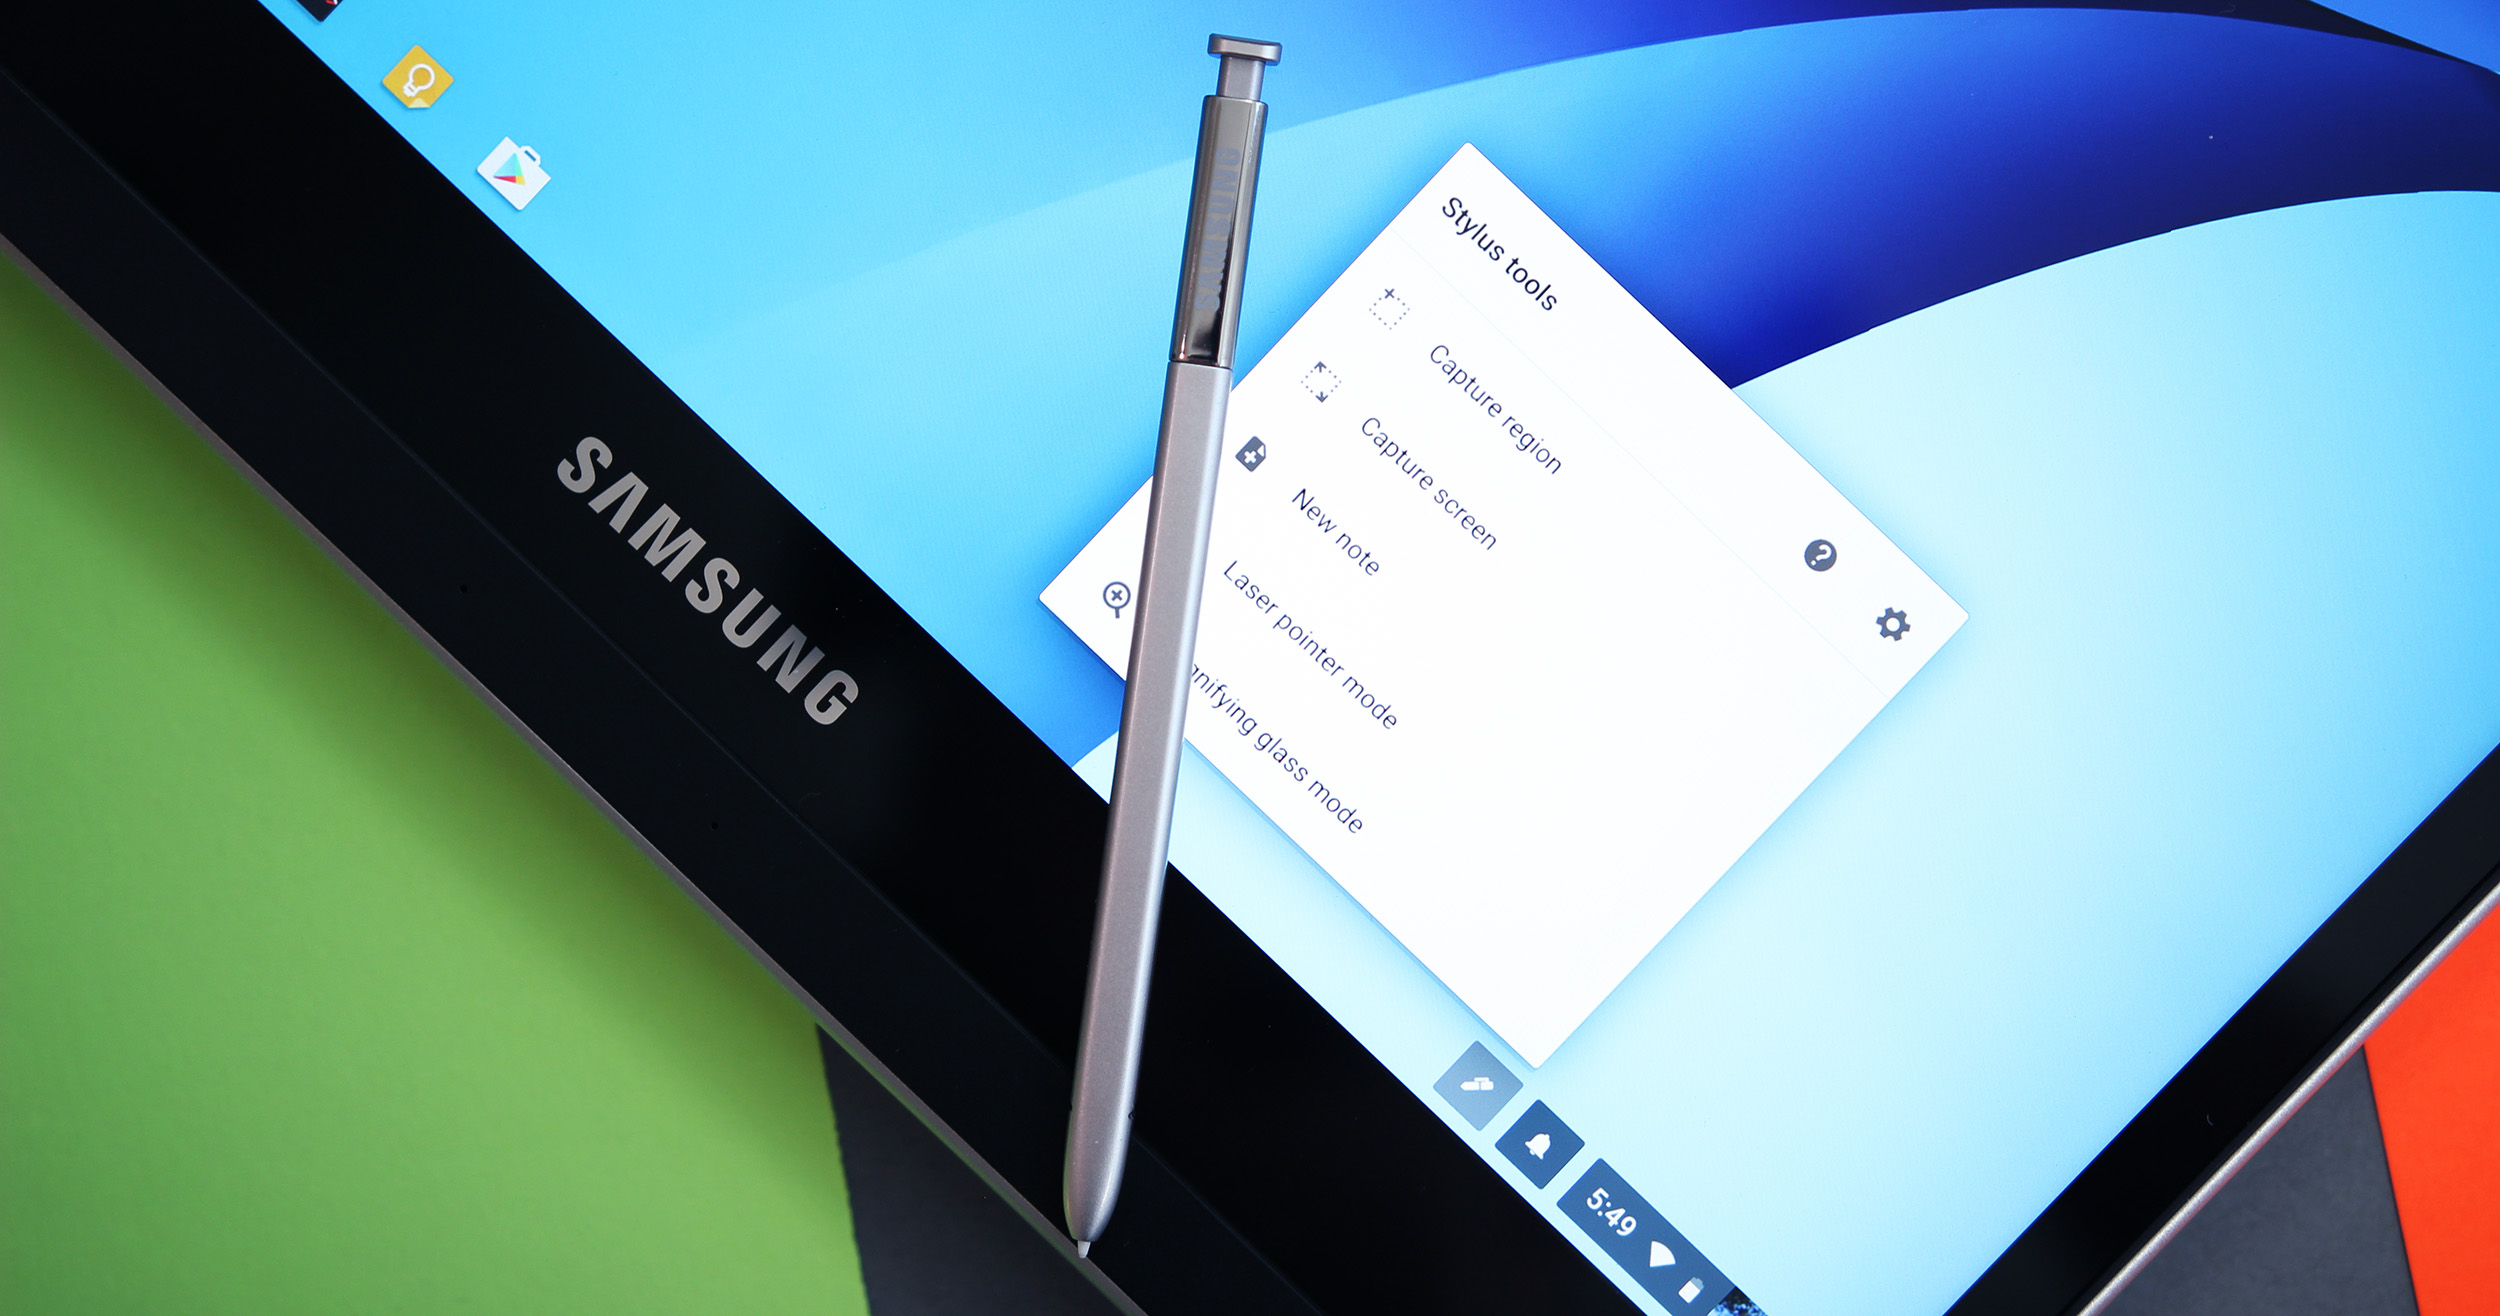 Review: Samsung Chromebook Plus has a display and build